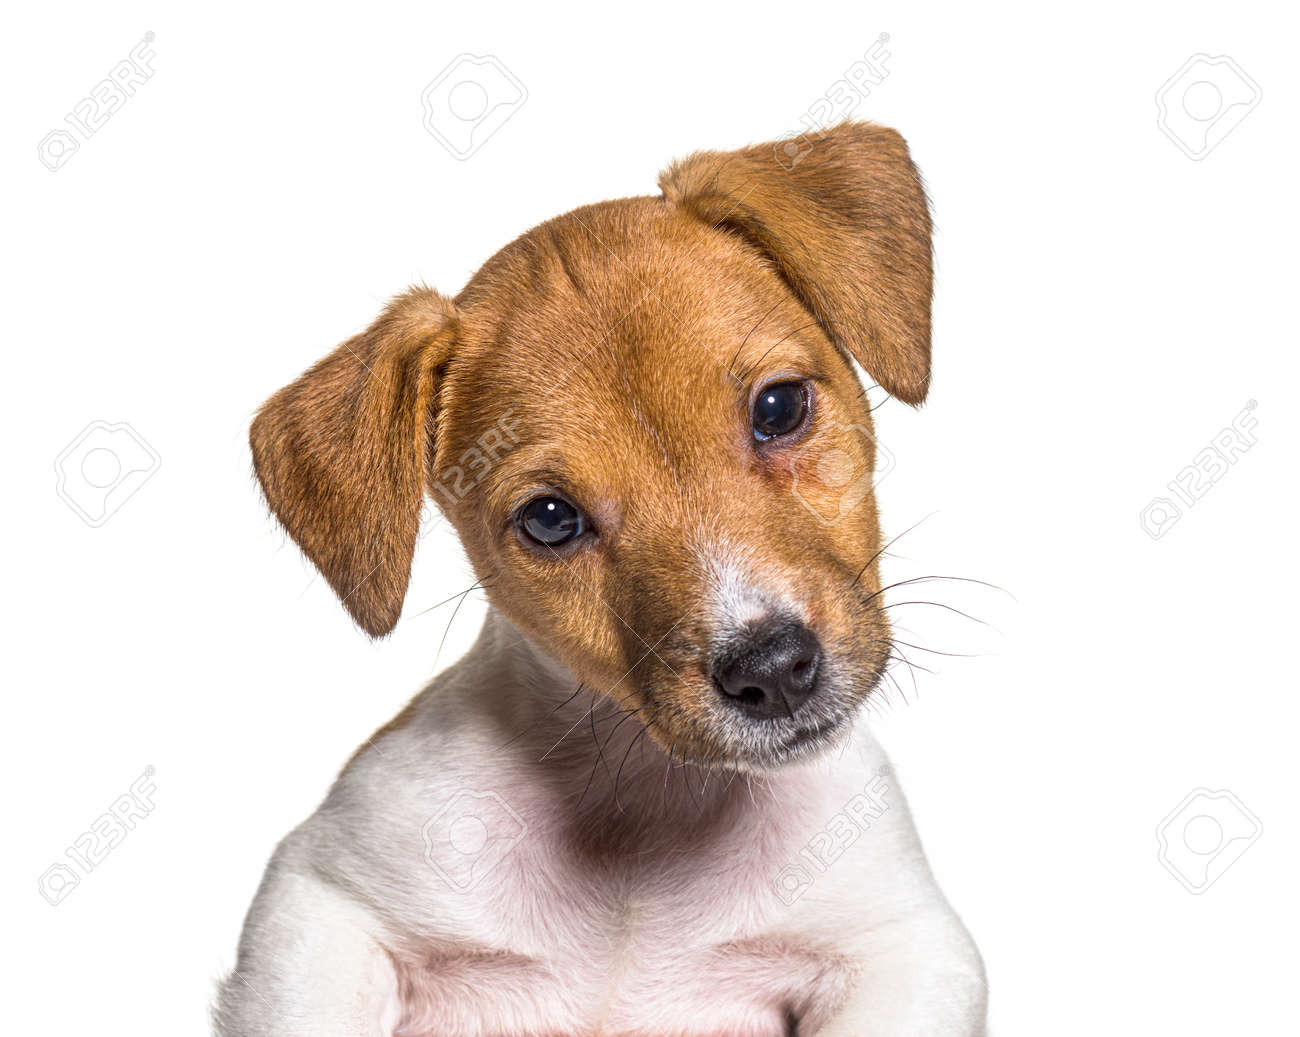 Head shot of a Puppy Jack russel terrier dog, two months old, isolated on white - 171049295